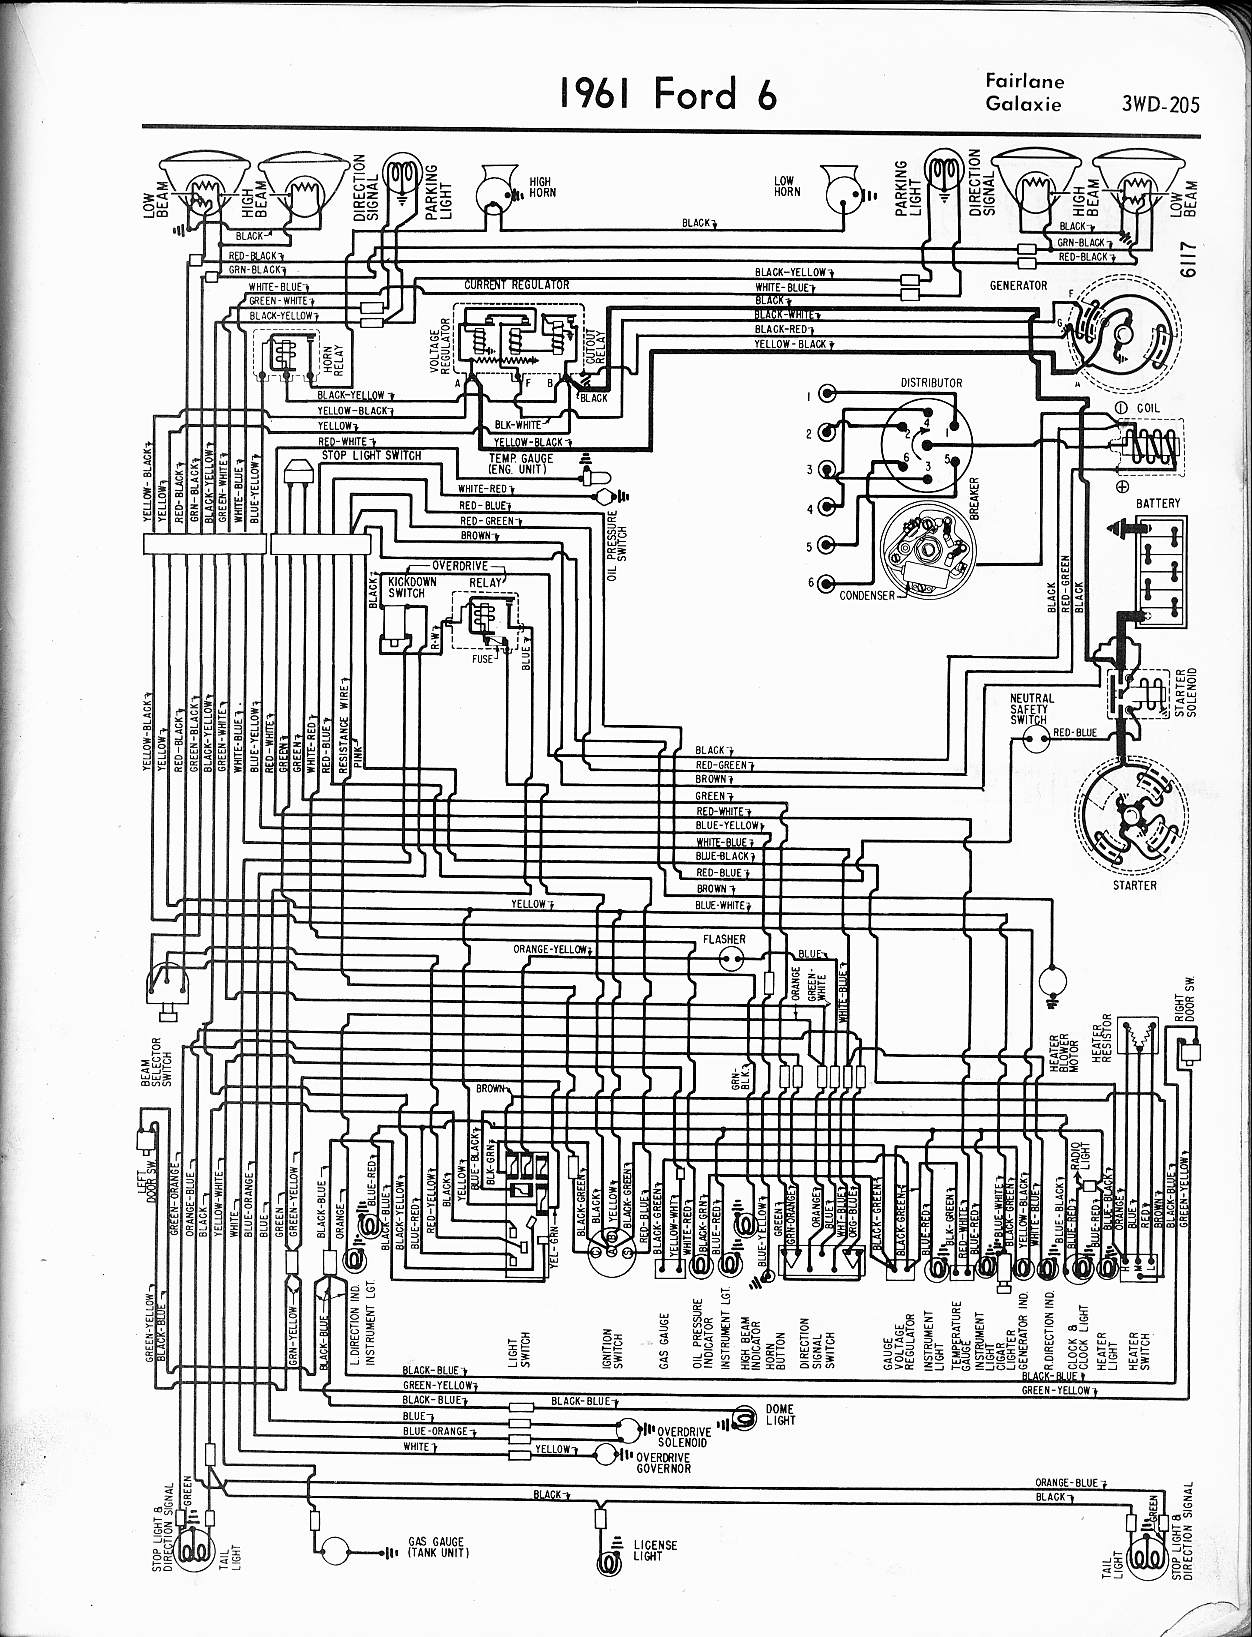 1964 Ford Galaxie Ignition Wiring Diagram 5765 Diagrams Surfacemounted Junction Box Ap9 Abb Oy Accessories 57 65 Rh Oldcarmanualproject Com